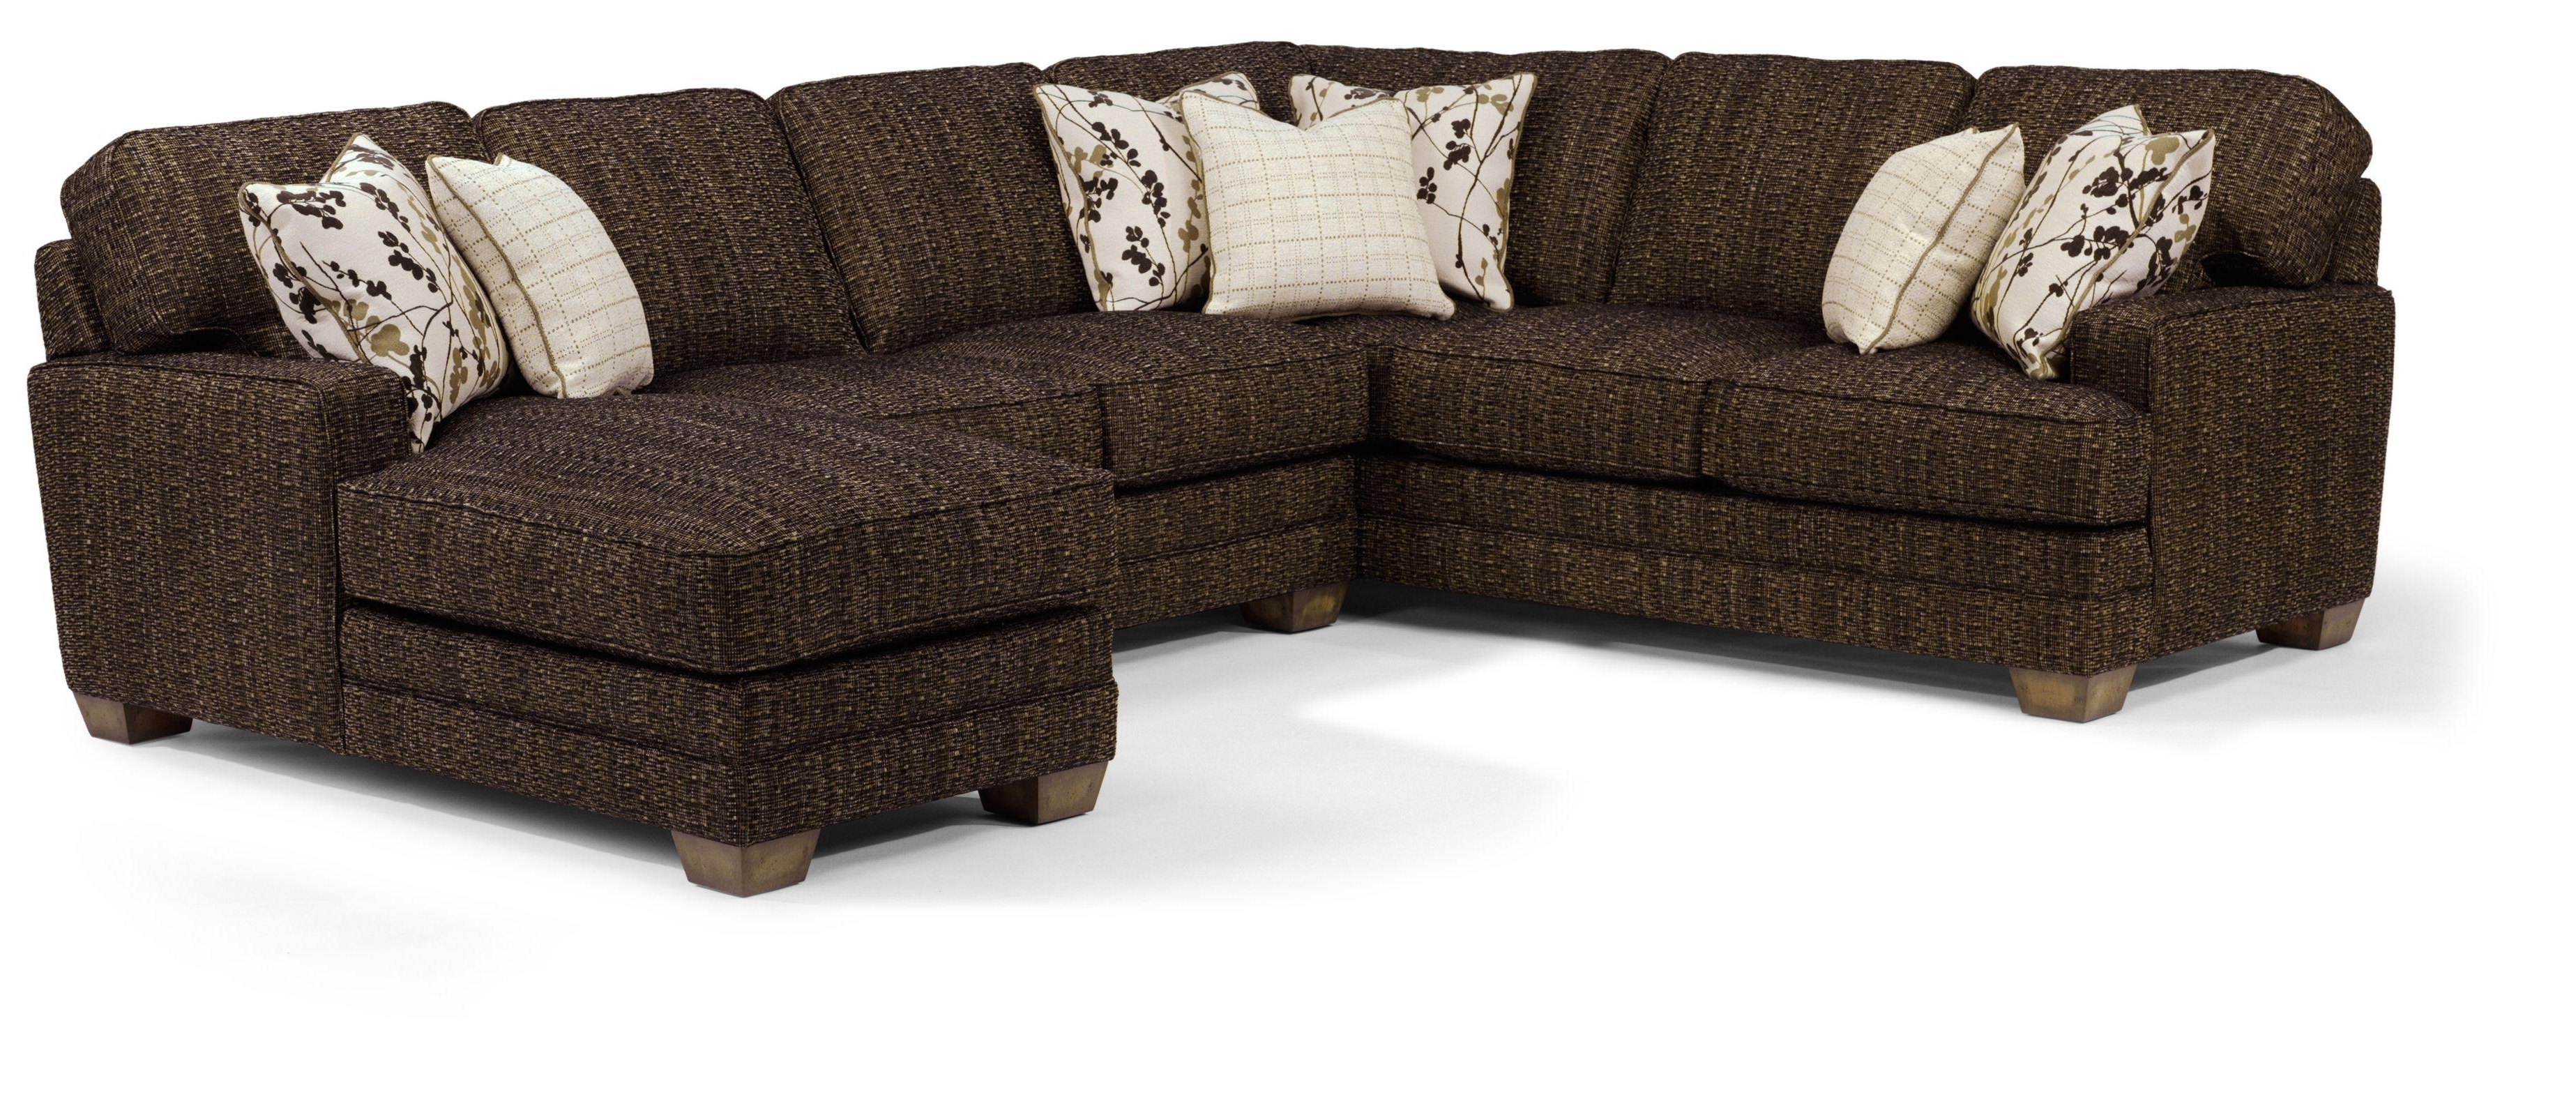 Current Duluth Mn Sectional Sofas Within Flexsteel That's My Style <B>Customizable</b> 3 Piece Sectional (View 1 of 20)